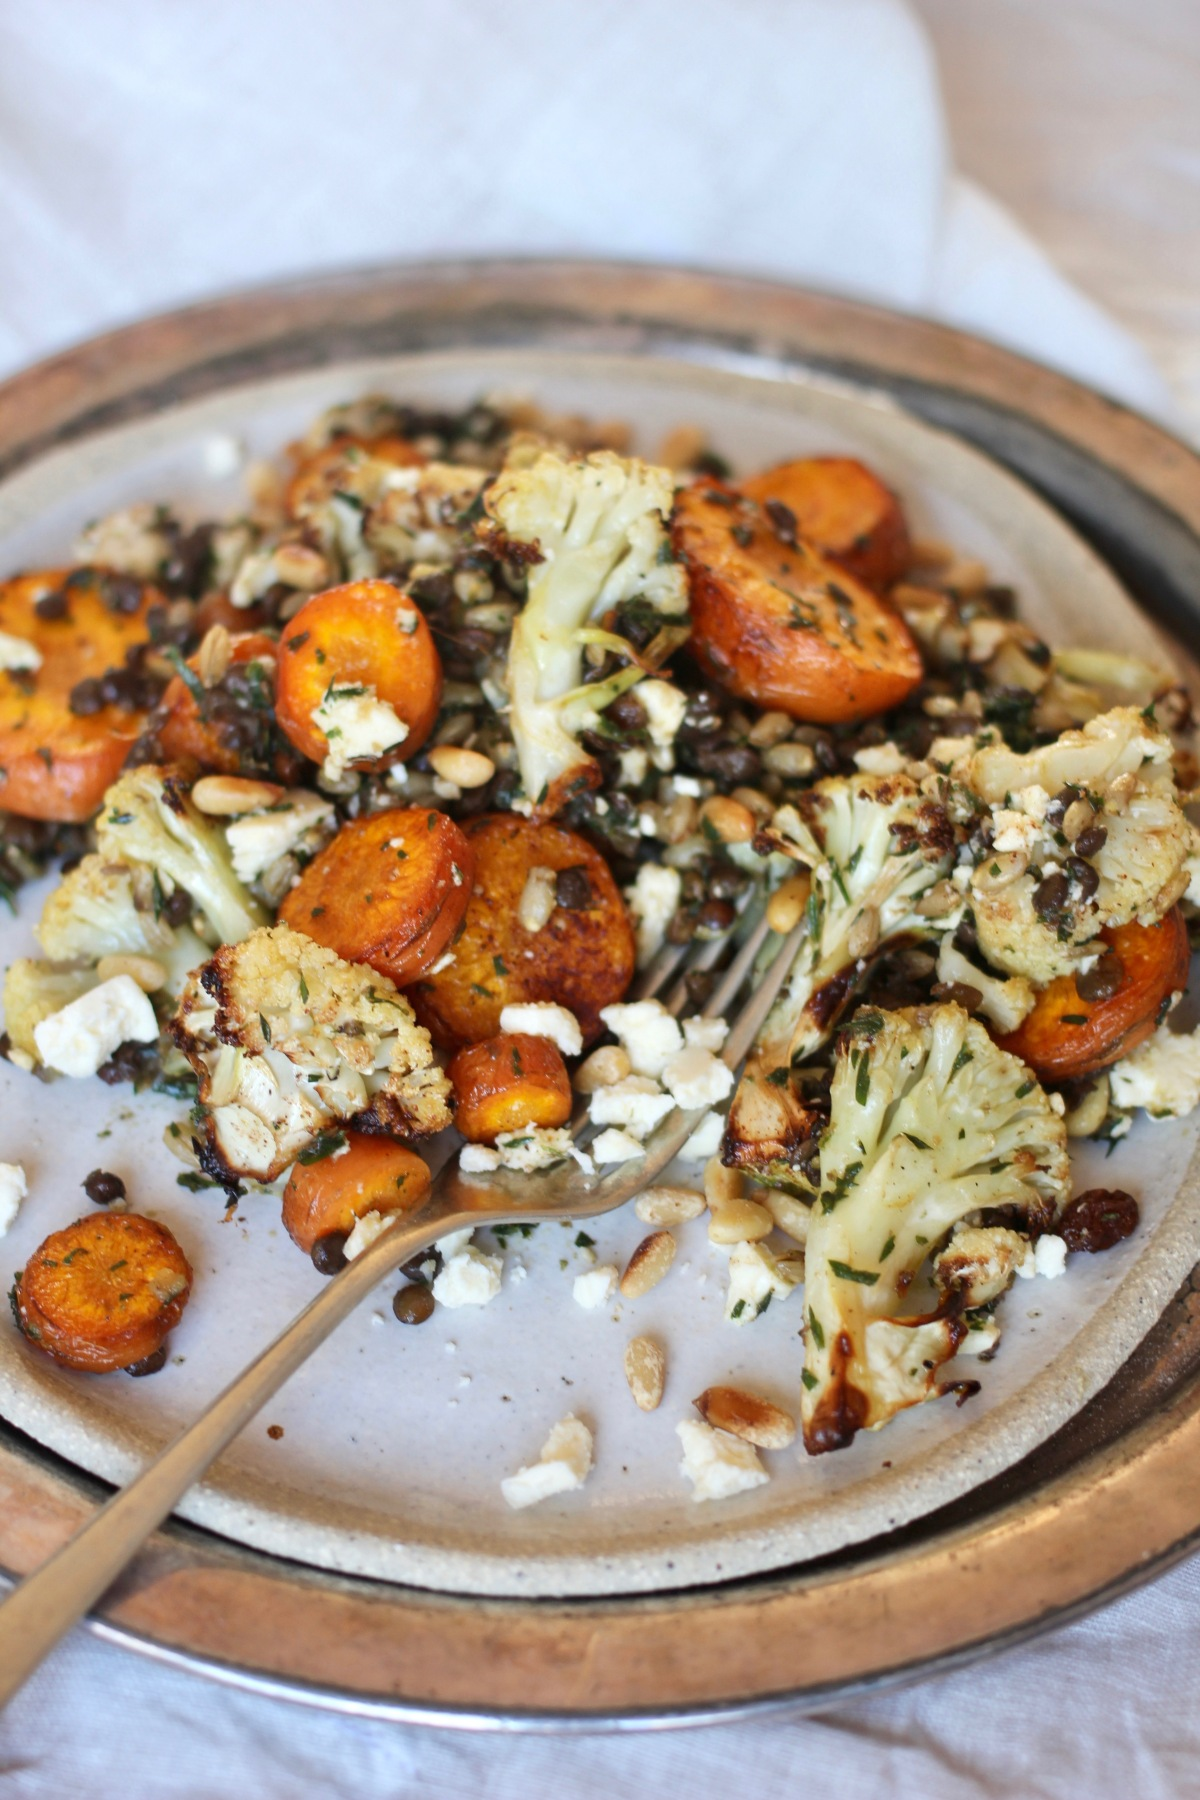 Roasted Carrot, Cauliflower & Black Lentil Salad